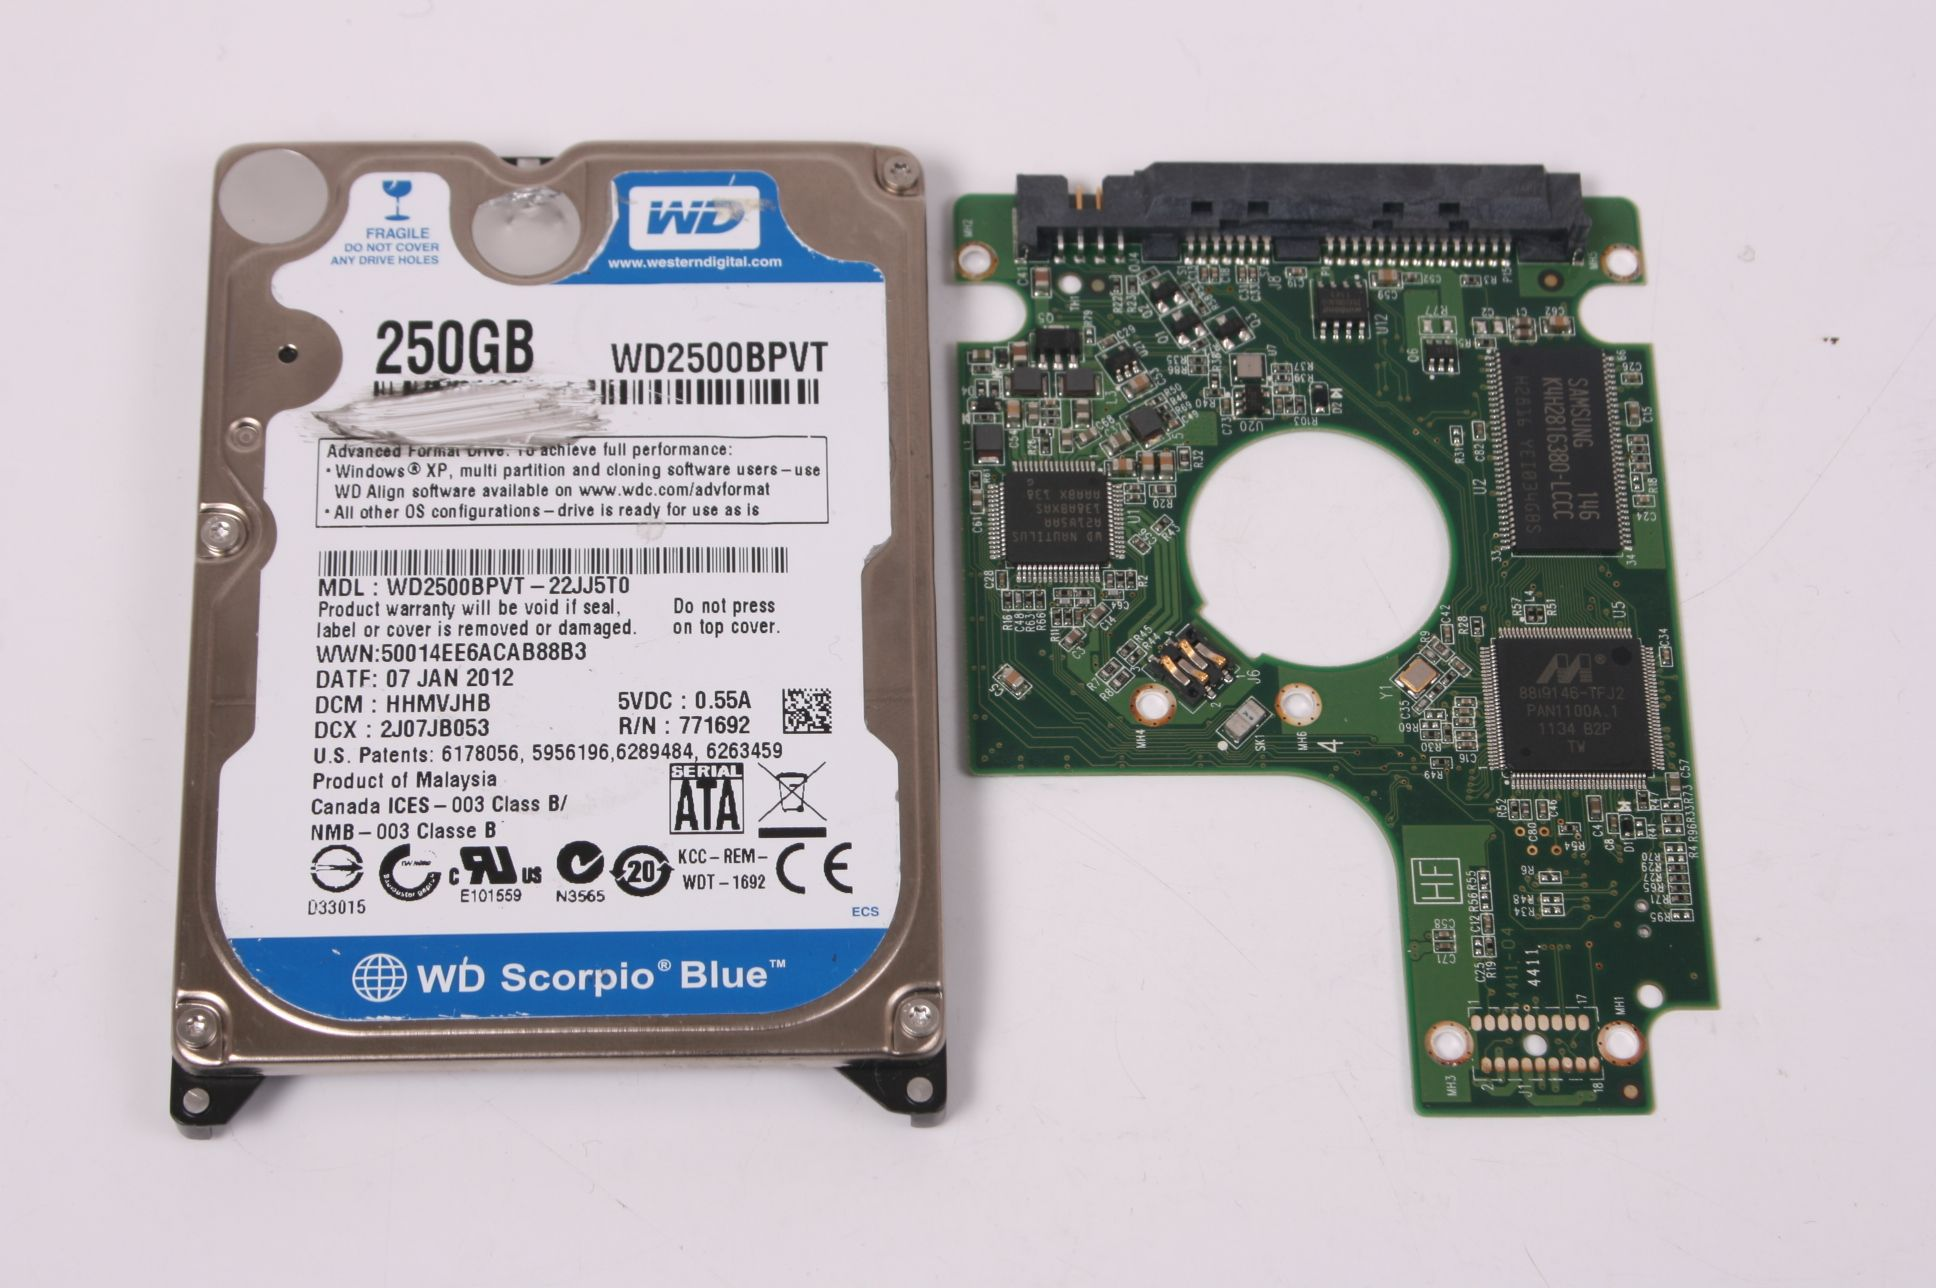 WD WD2500BPVT-22JJ5T0 250GB SATA 2,5 HARD DRIVE / PCB (CIRCUIT BOARD) ONLY FOR DATA